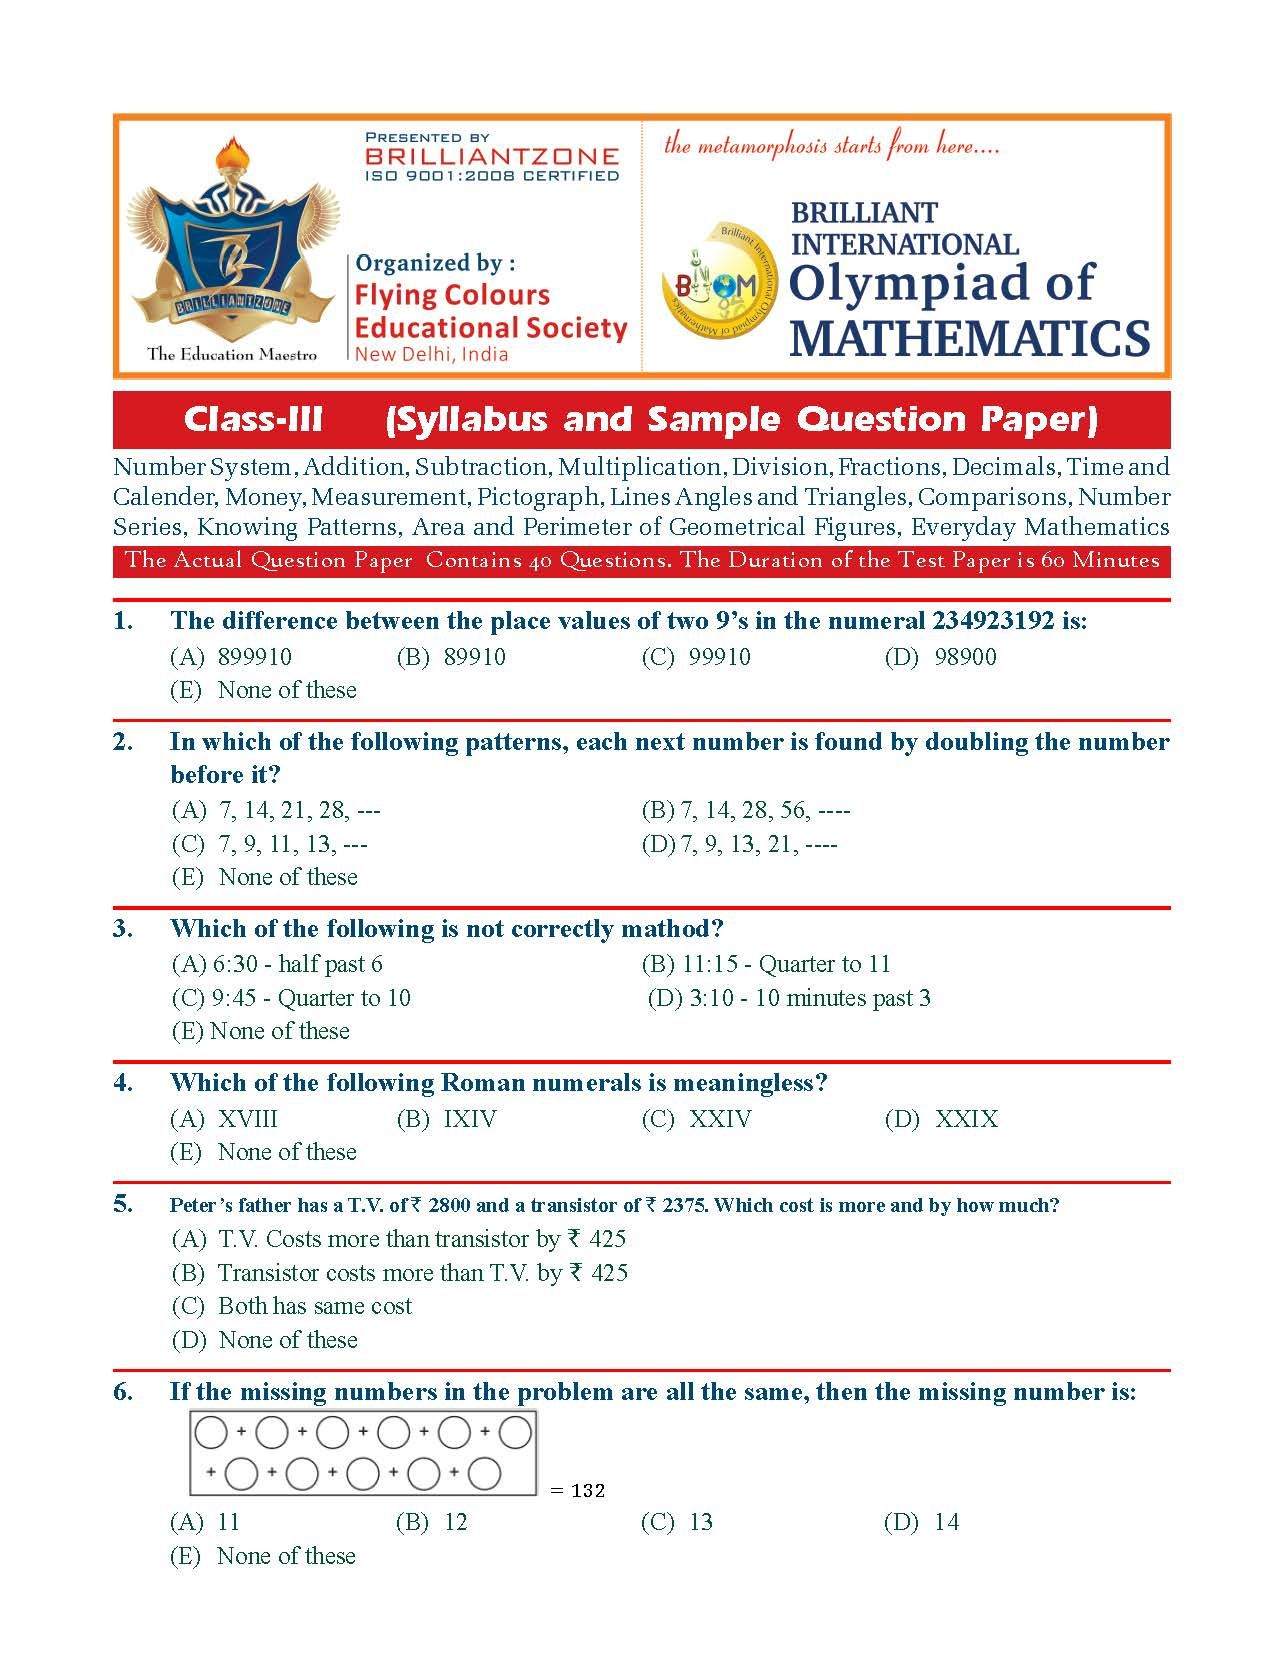 Class 3 Briliant International Mathematics Olympiad Biom